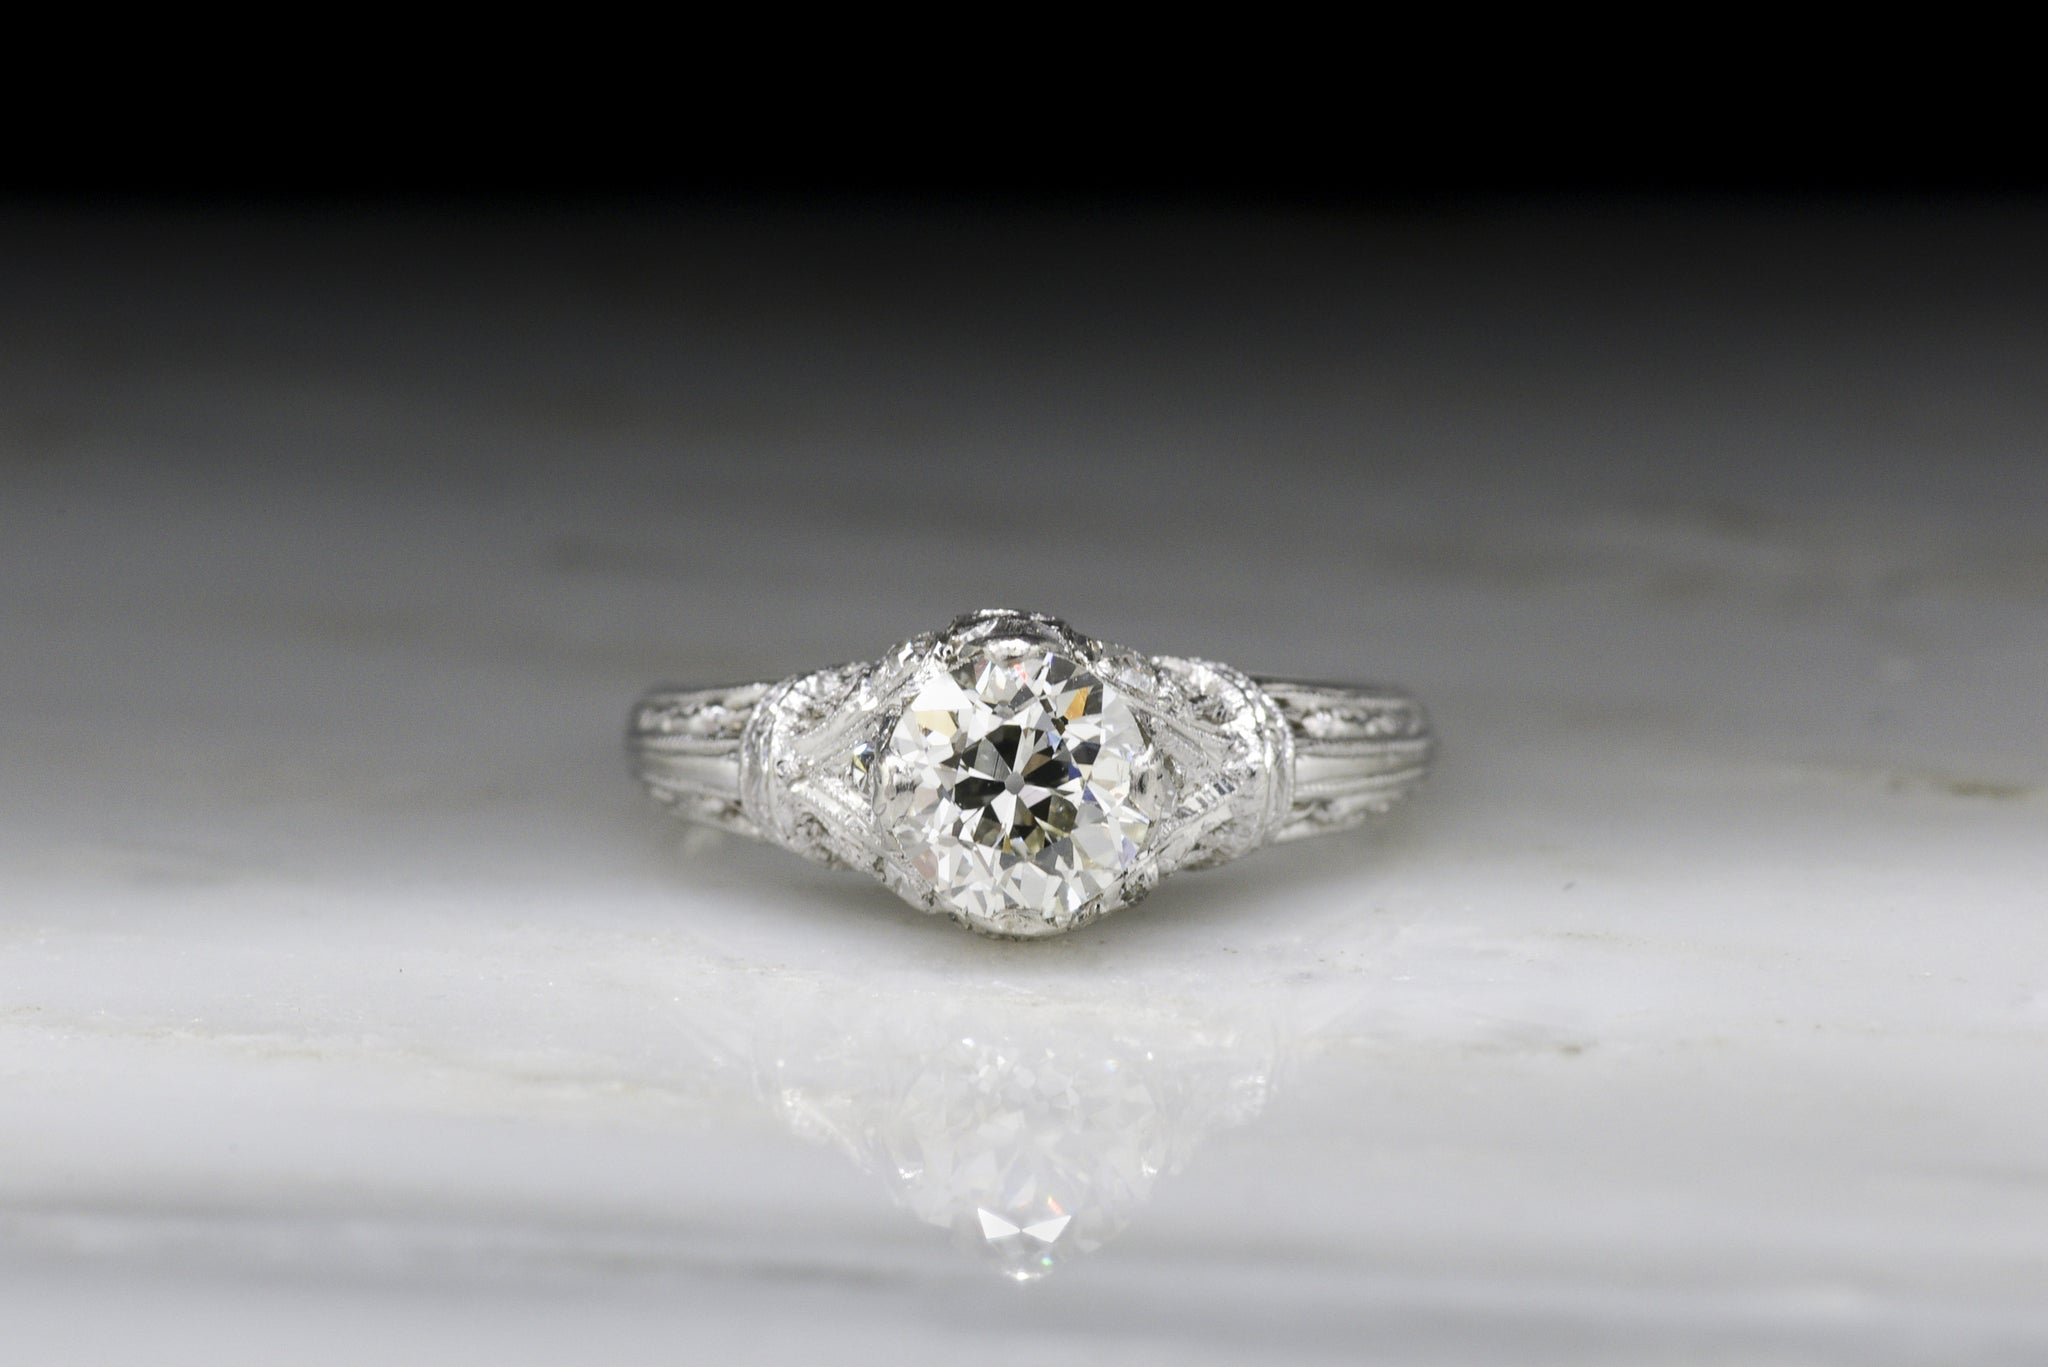 Antique Edwardian Engagement Ring with Old European Cut Diamond